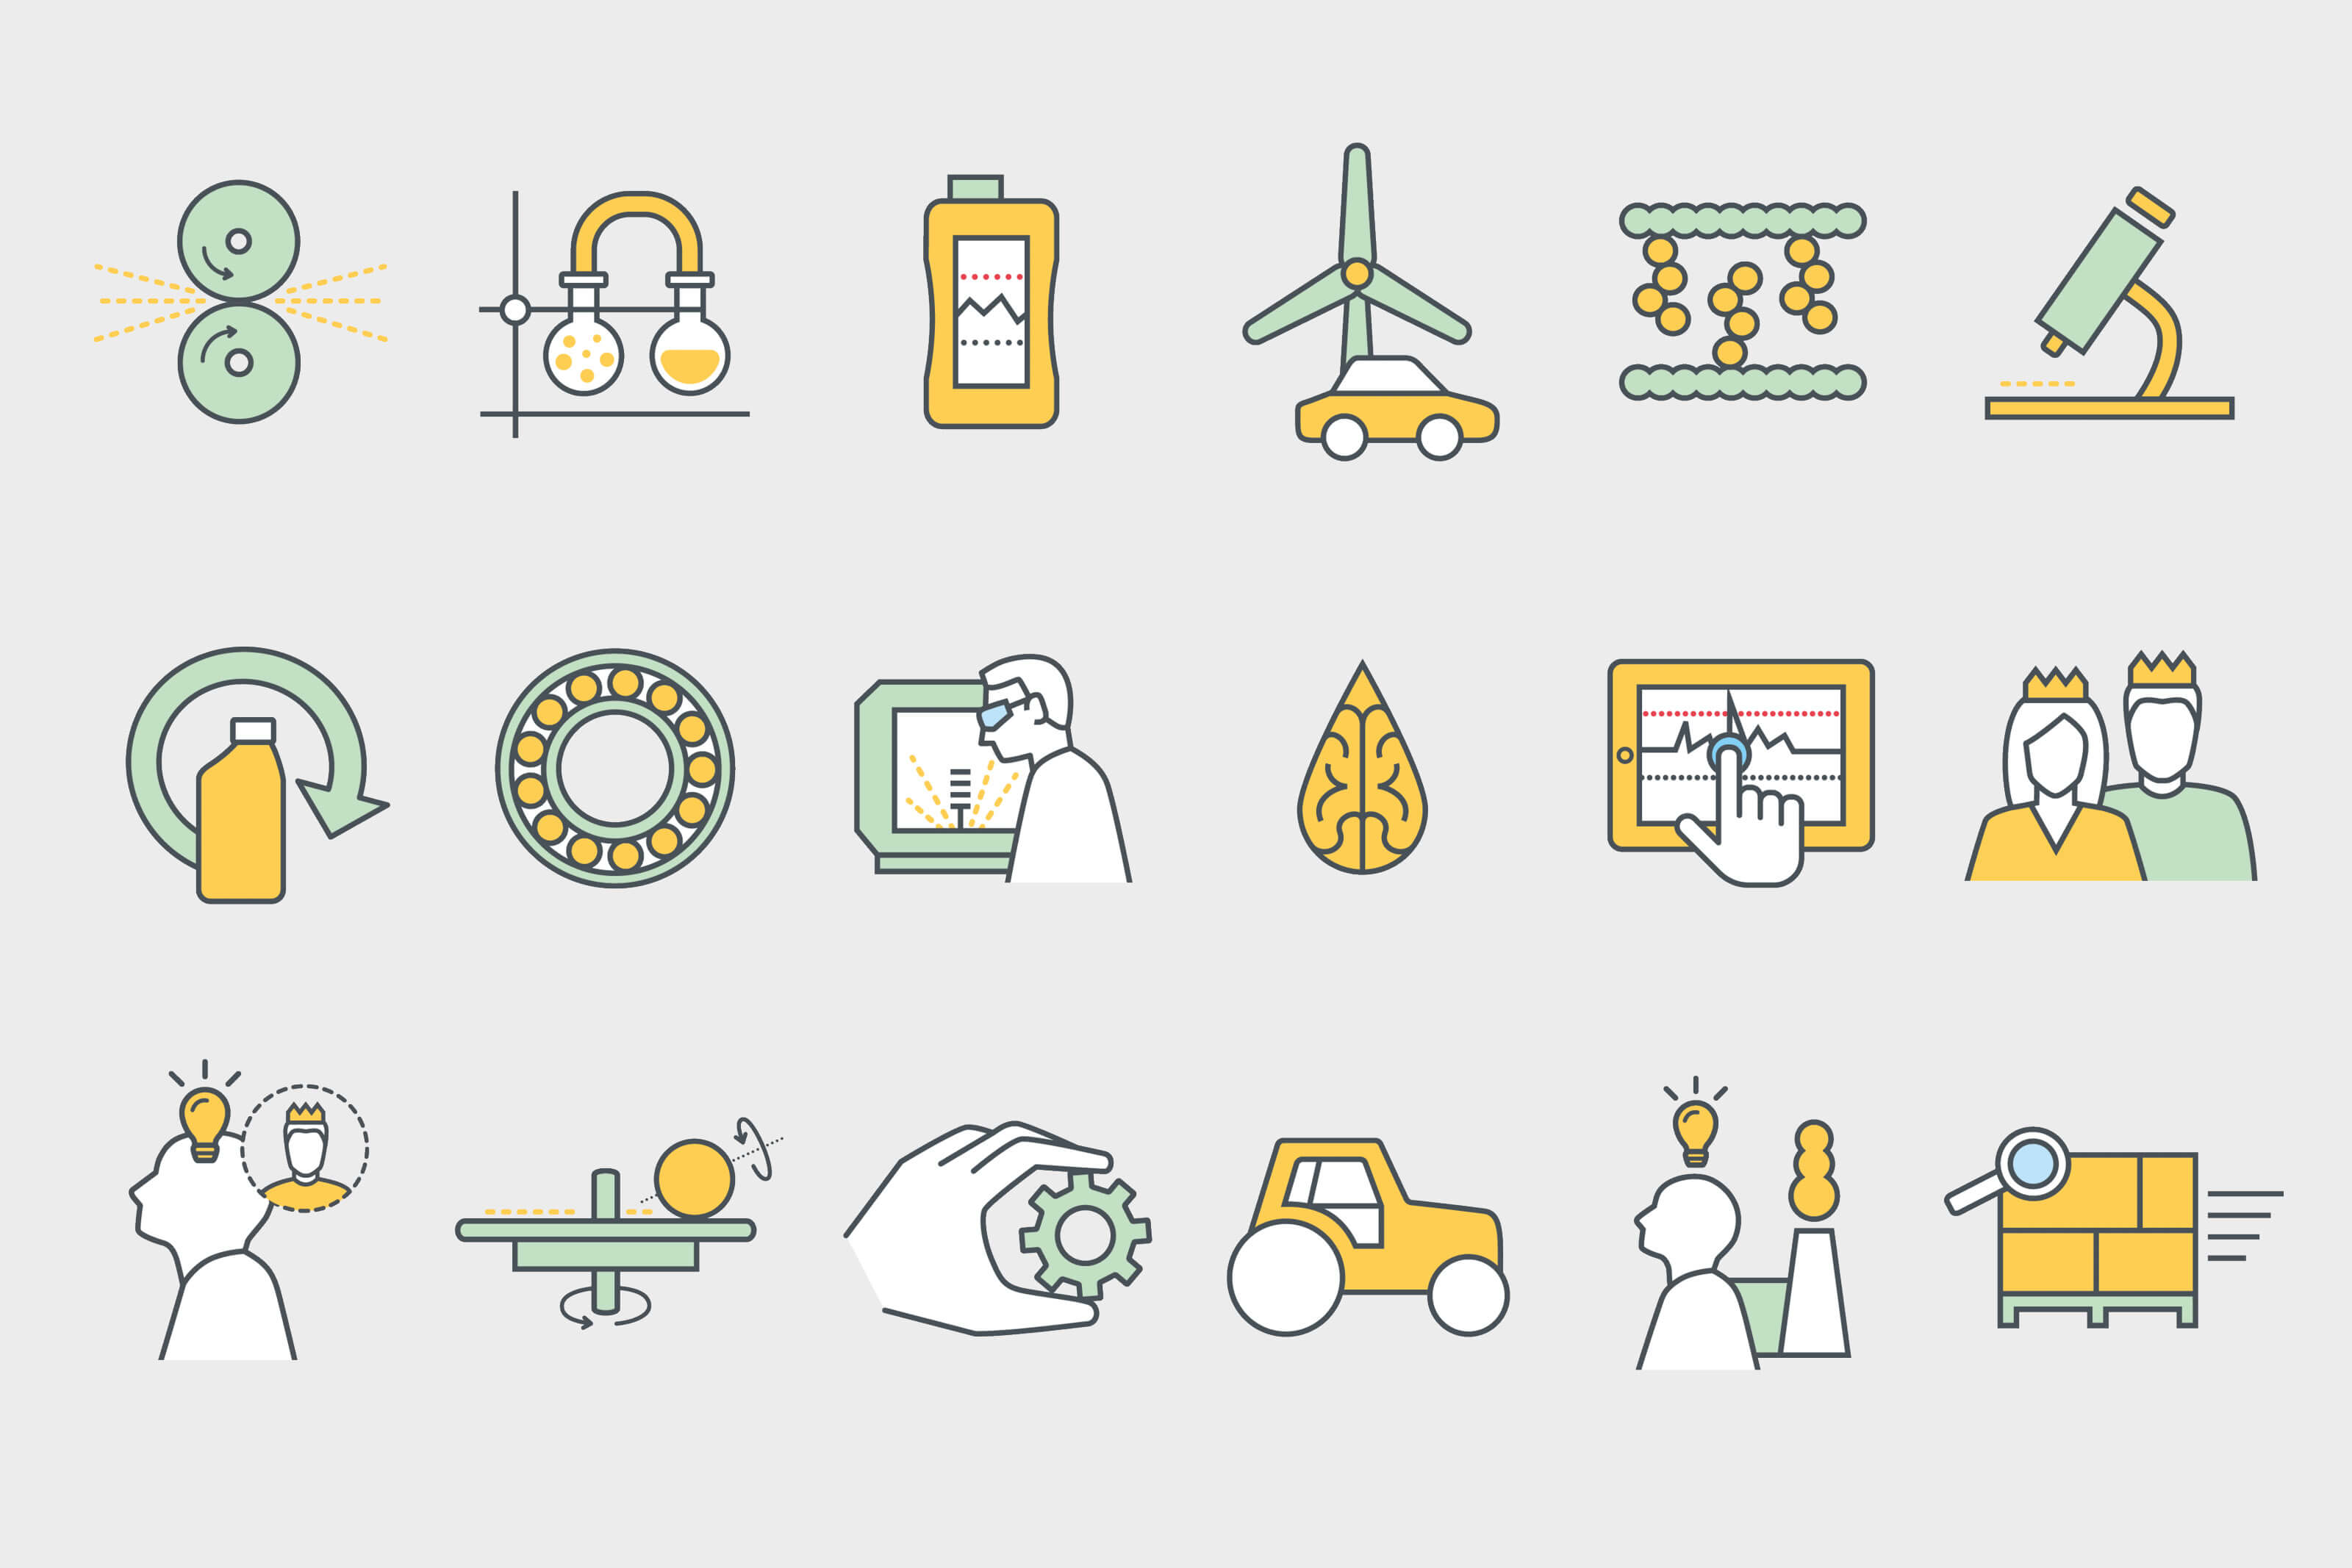 Pictograms for inoviga